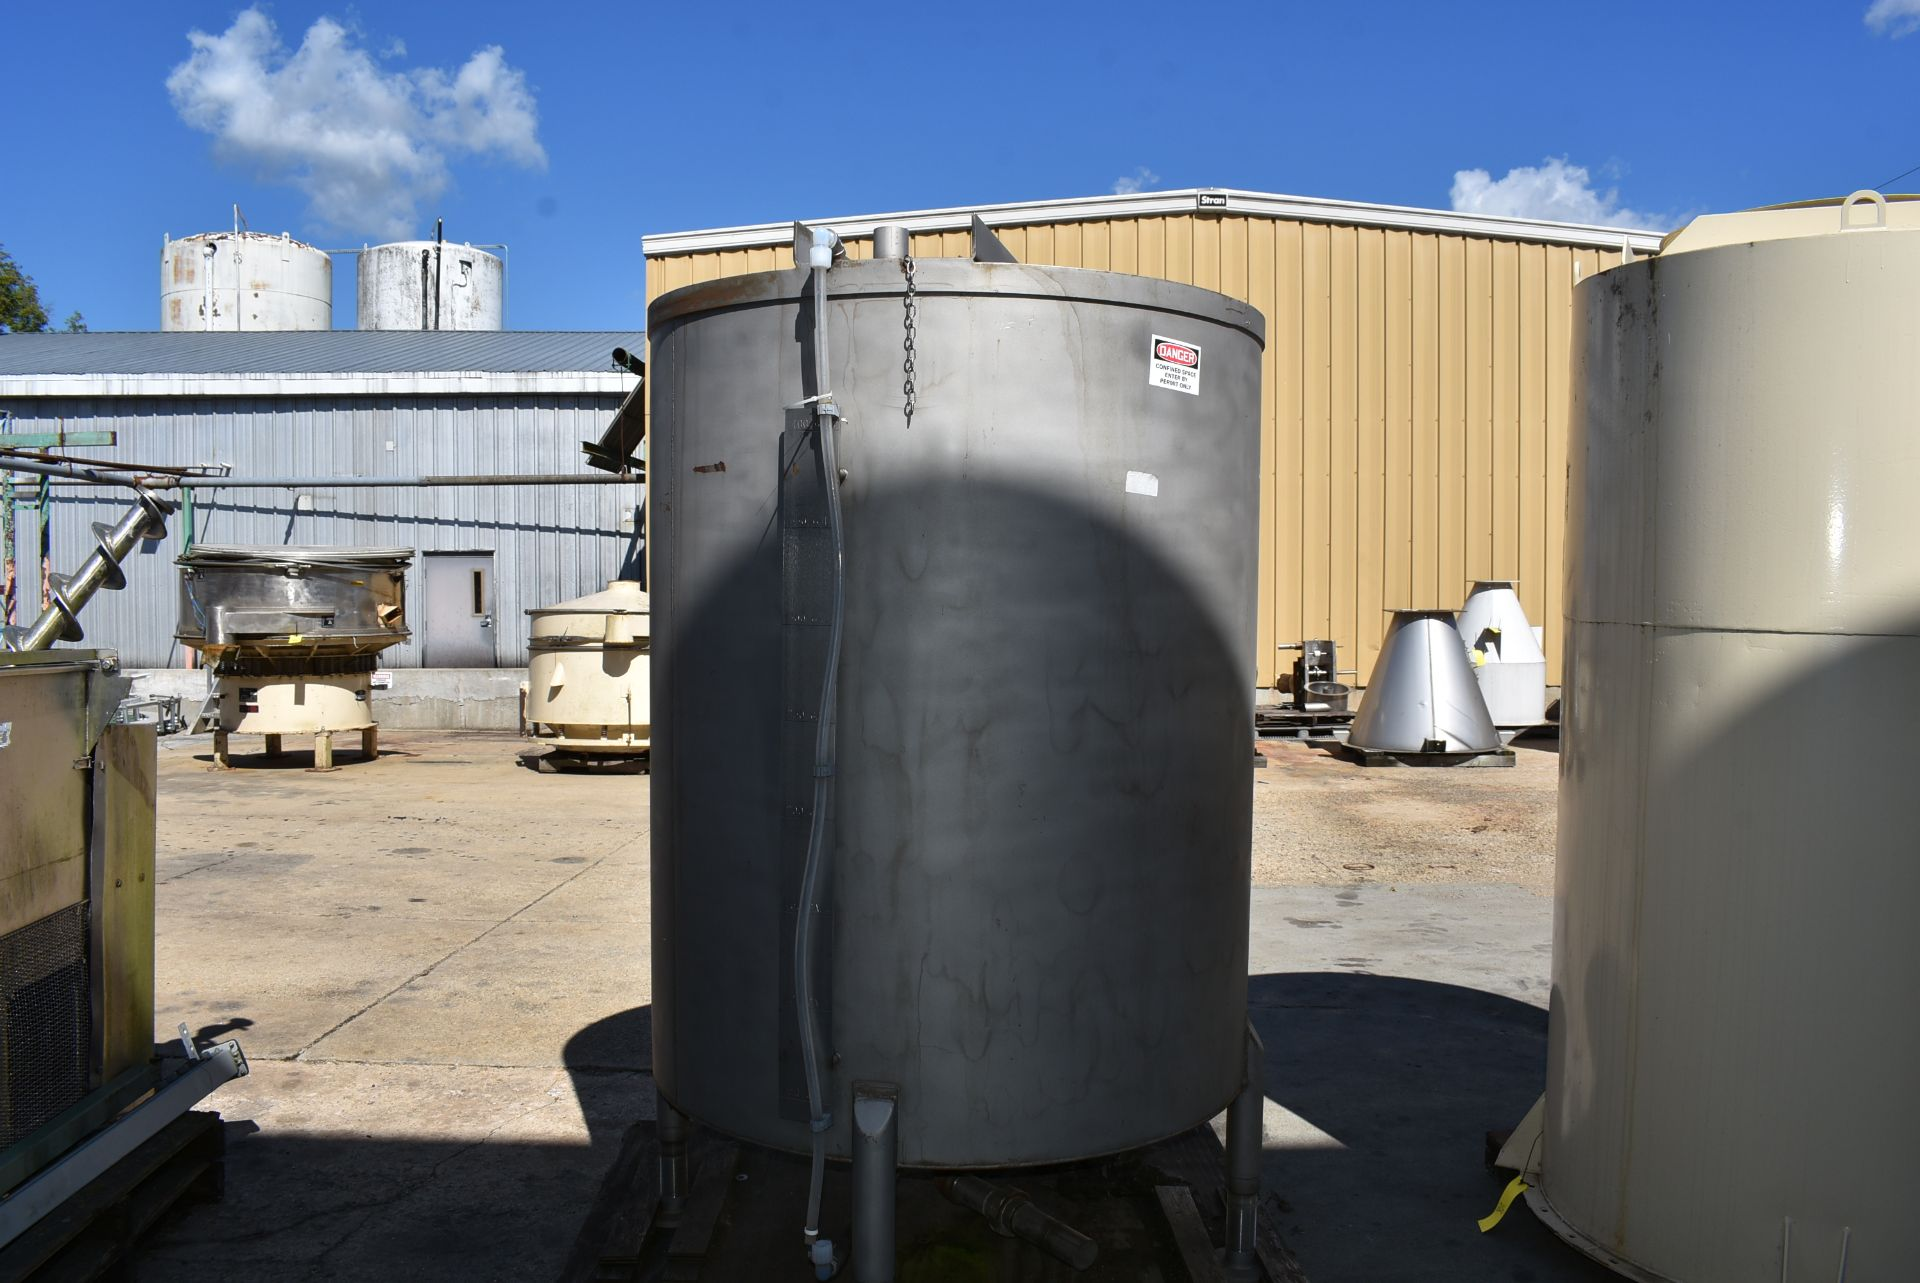 """Stainless Steel Tank, Rated 400 Gallons, 48"""" Diameter x 60"""" - Image 2 of 5"""